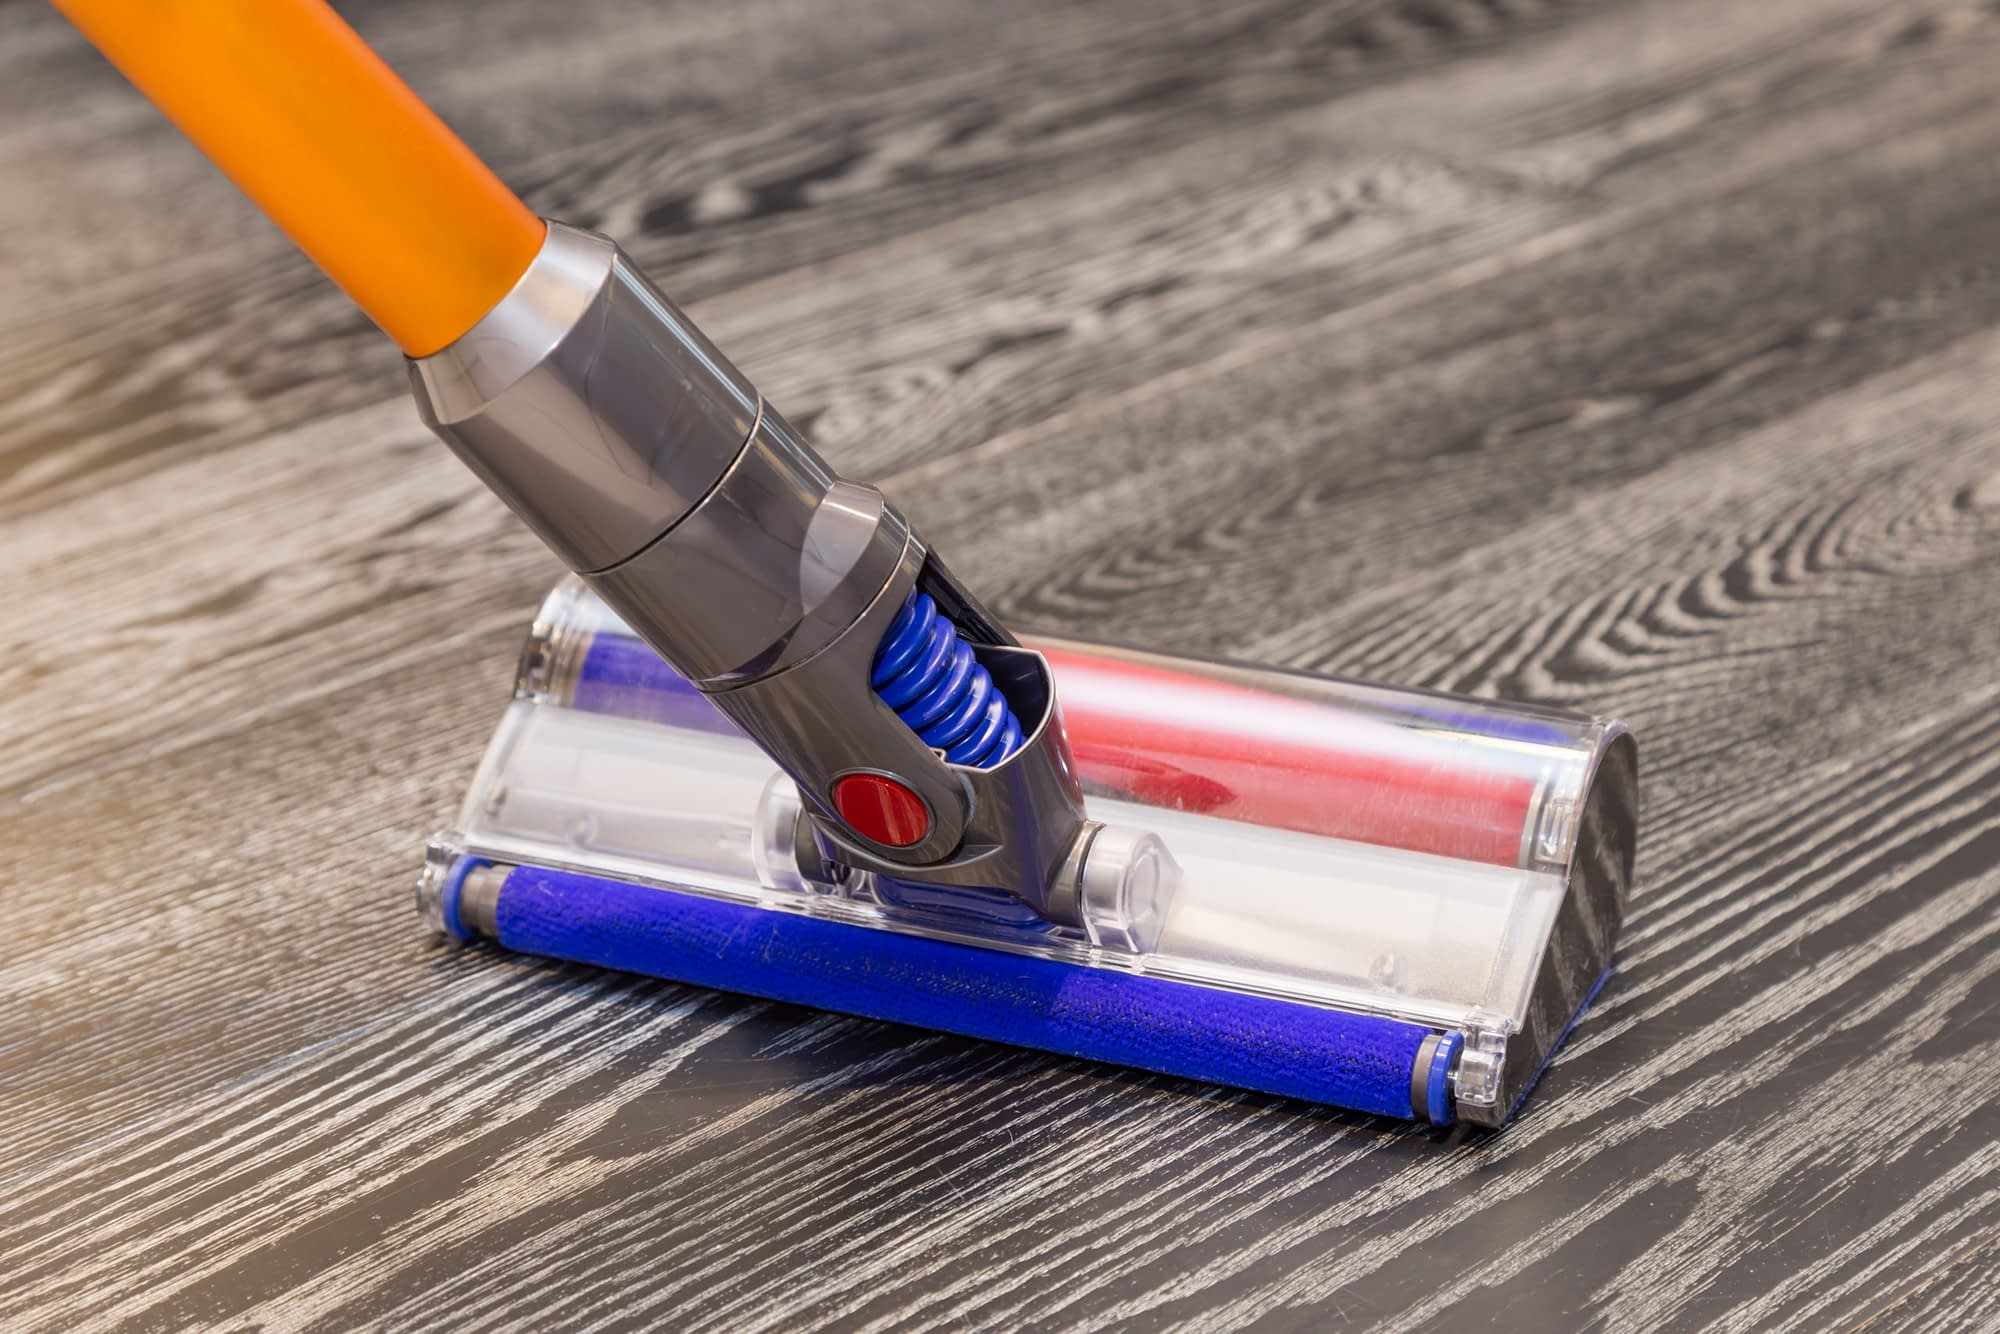 Best Rechargeable Vacuum For Hard Floors